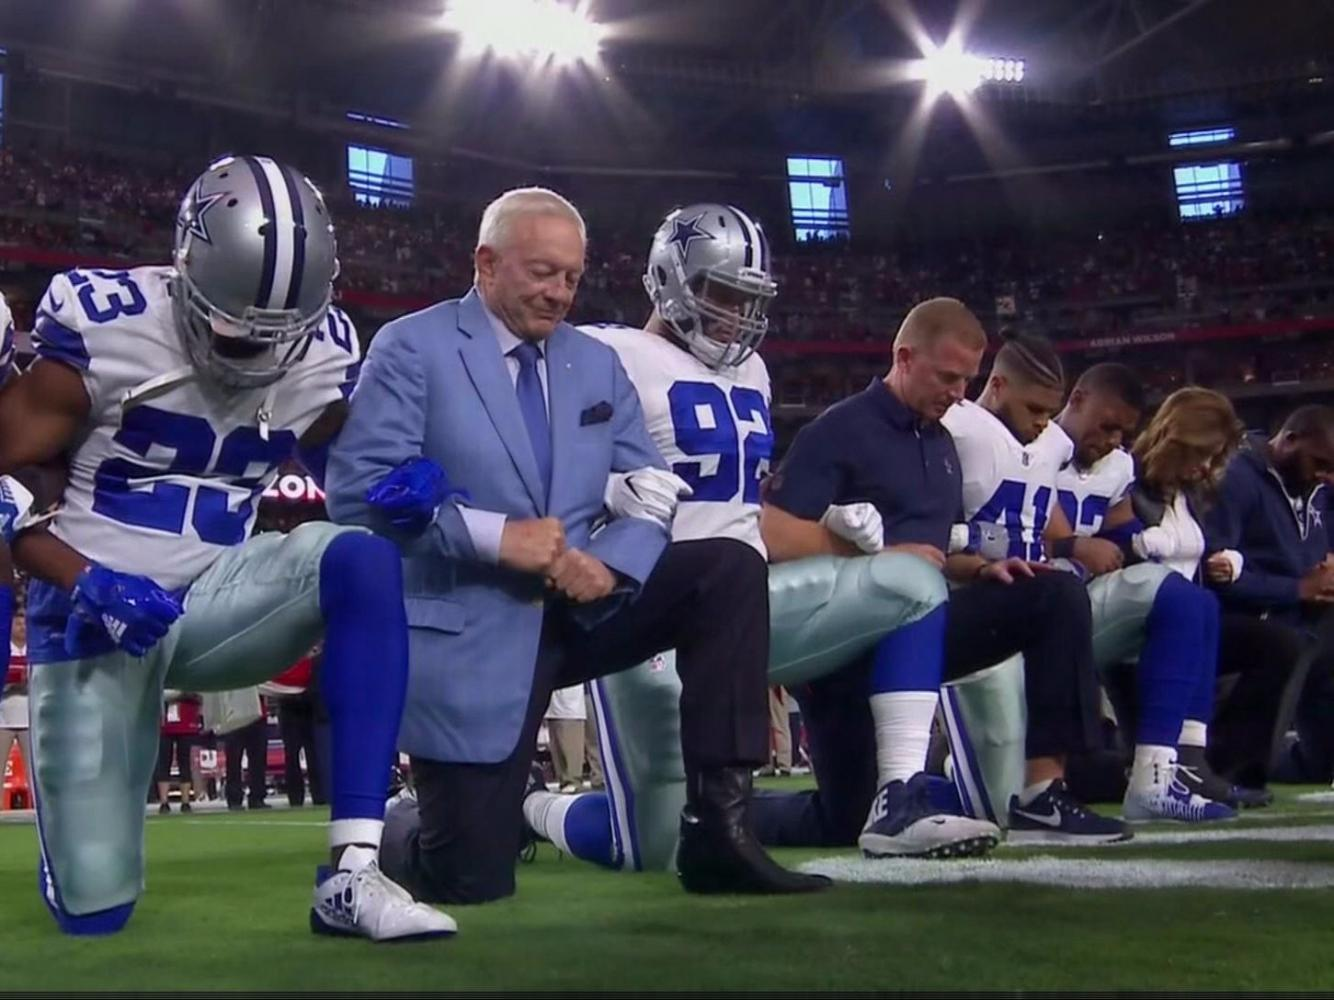 Team owner and Trump supporter Jerry Jones kneels with the Dallas Cowboys prior to the national anthem on Monday, Sept. 25. The team did stand with locked arms during the singing of the anthem, however.